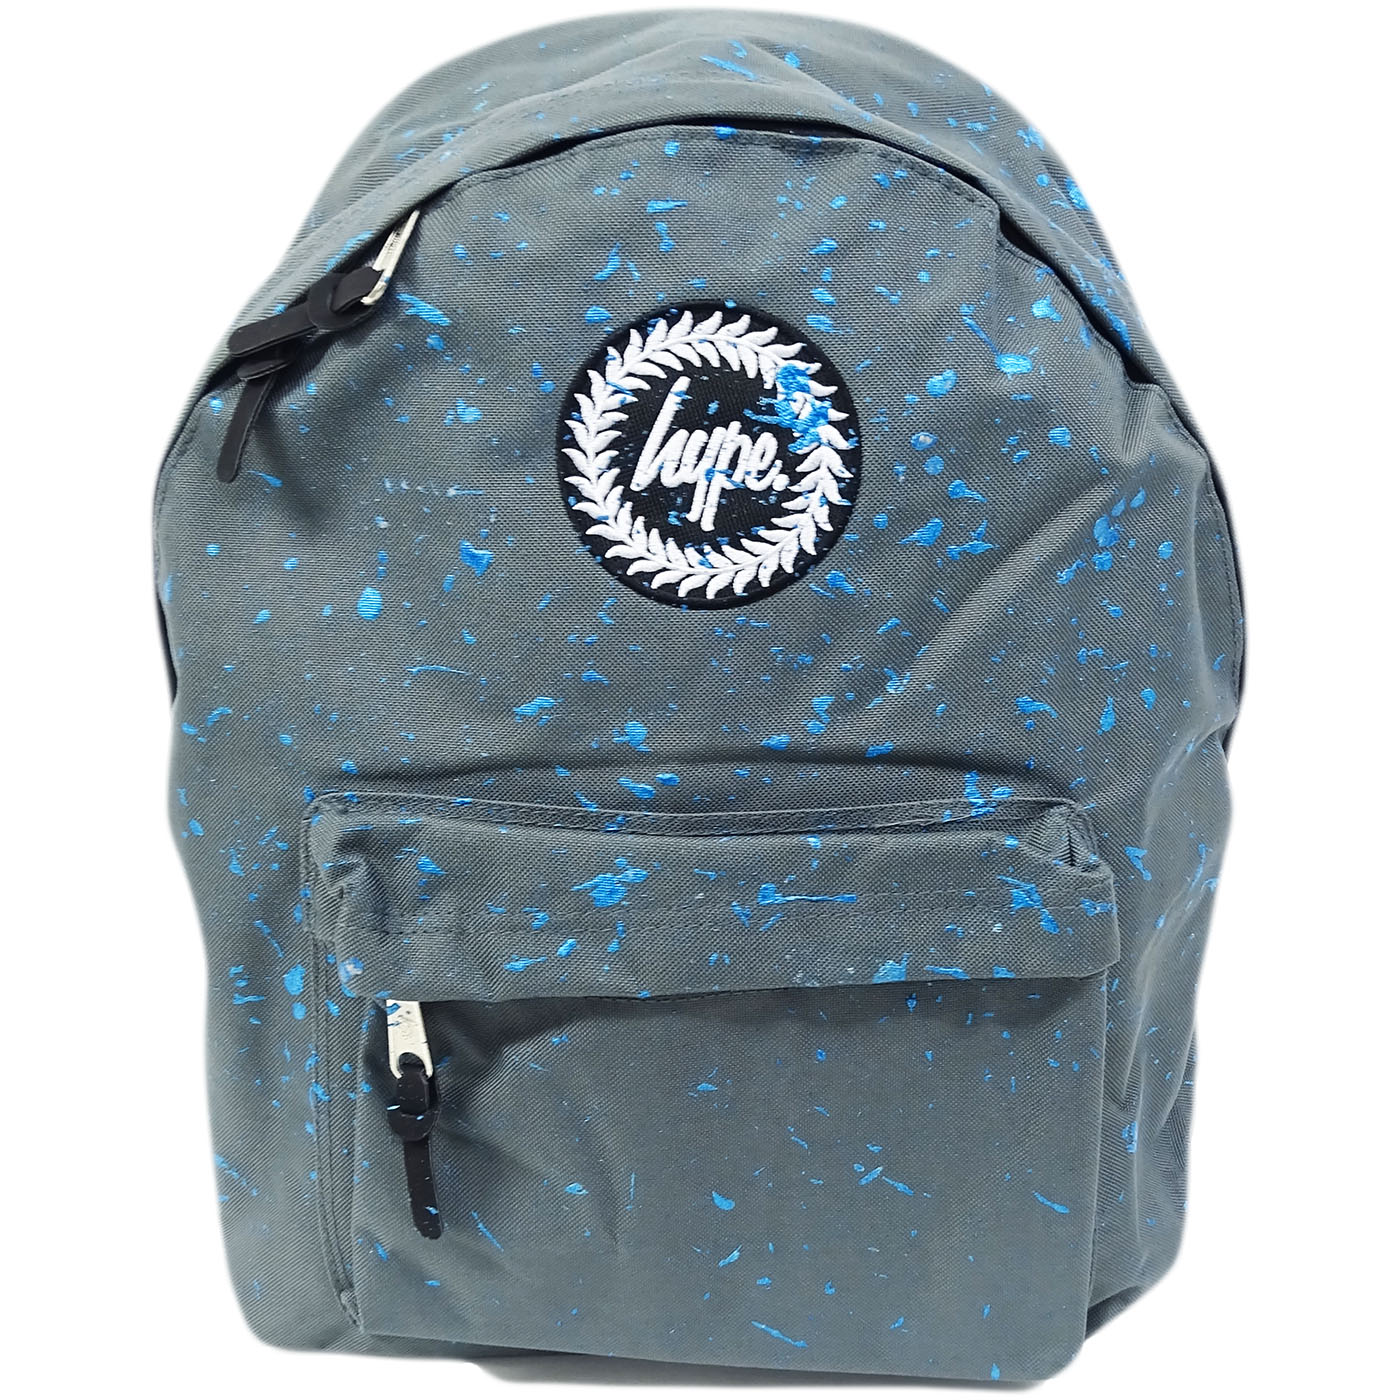 Hype Speckle Bag Grey / Blue Rucksack / Backpack Bag